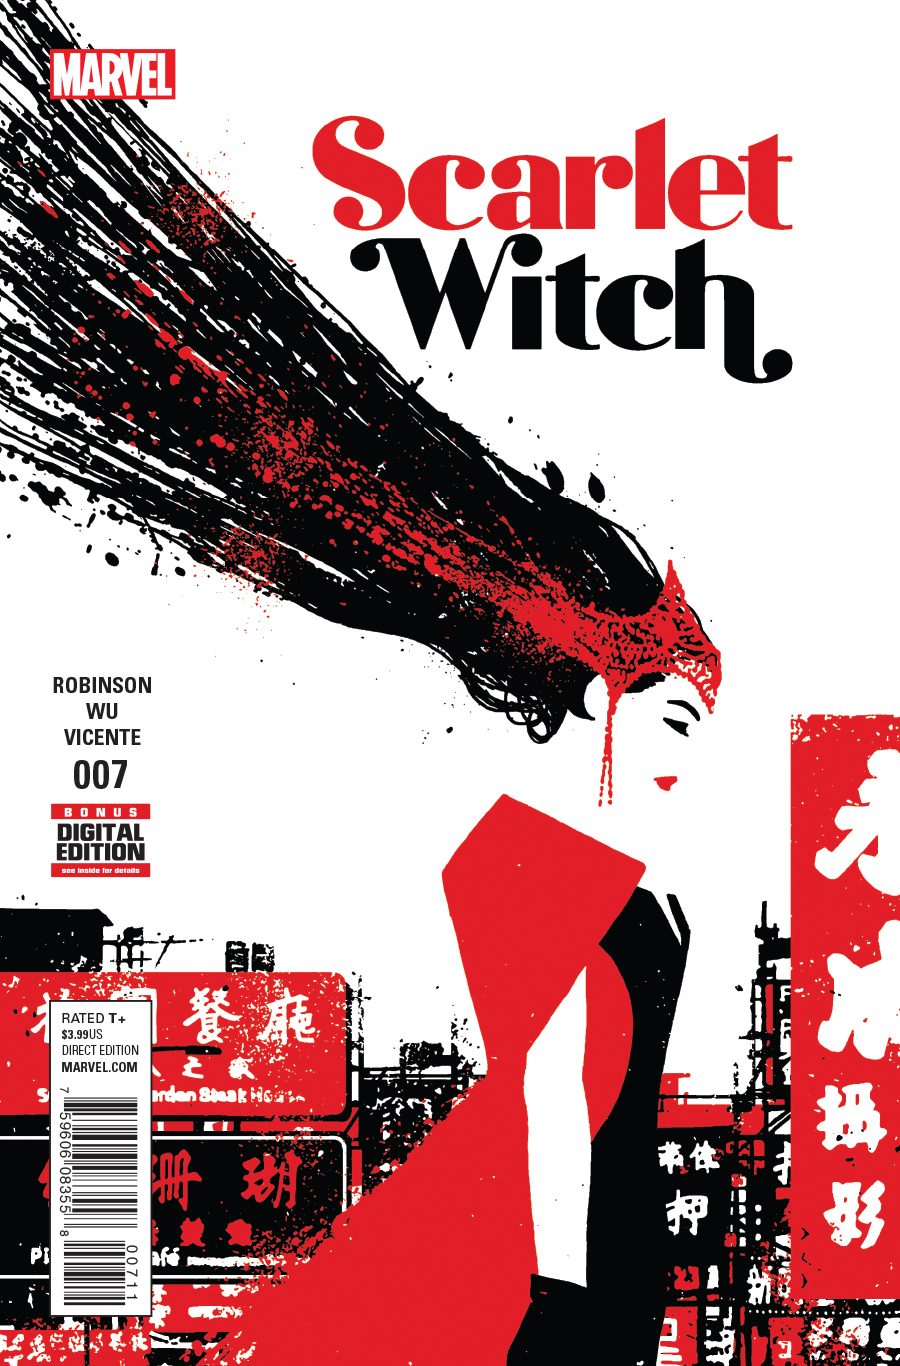 SCARLET WITCH #7 NIMIT MALAVIA STORY THUS FAR VARIANT COVER